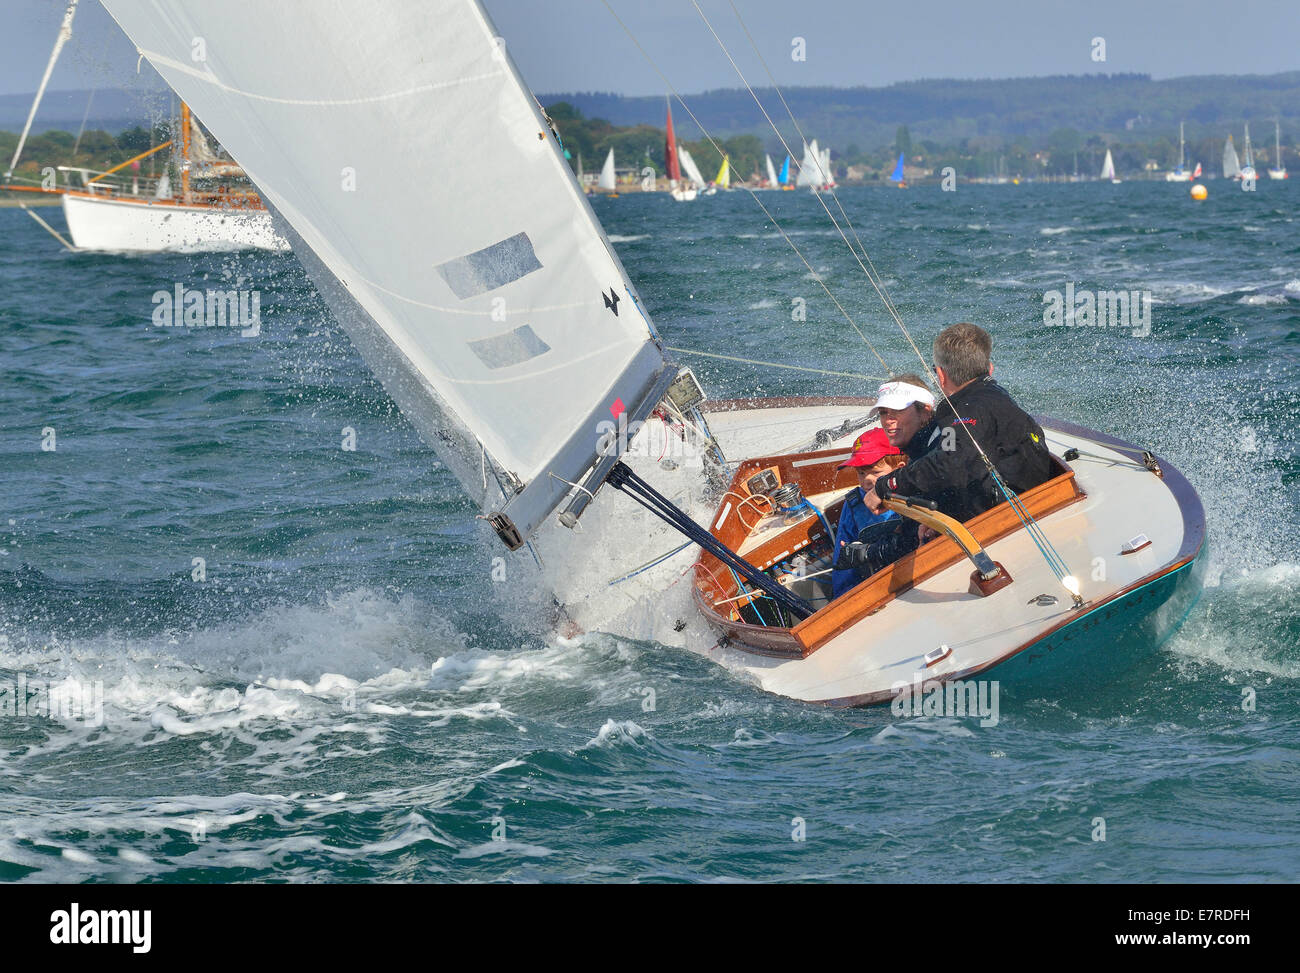 Sunbeam  keel class 'Alchemy ,boat racing with family in Chichester Harbour West Sussex in perfect wind conditions - Stock Image